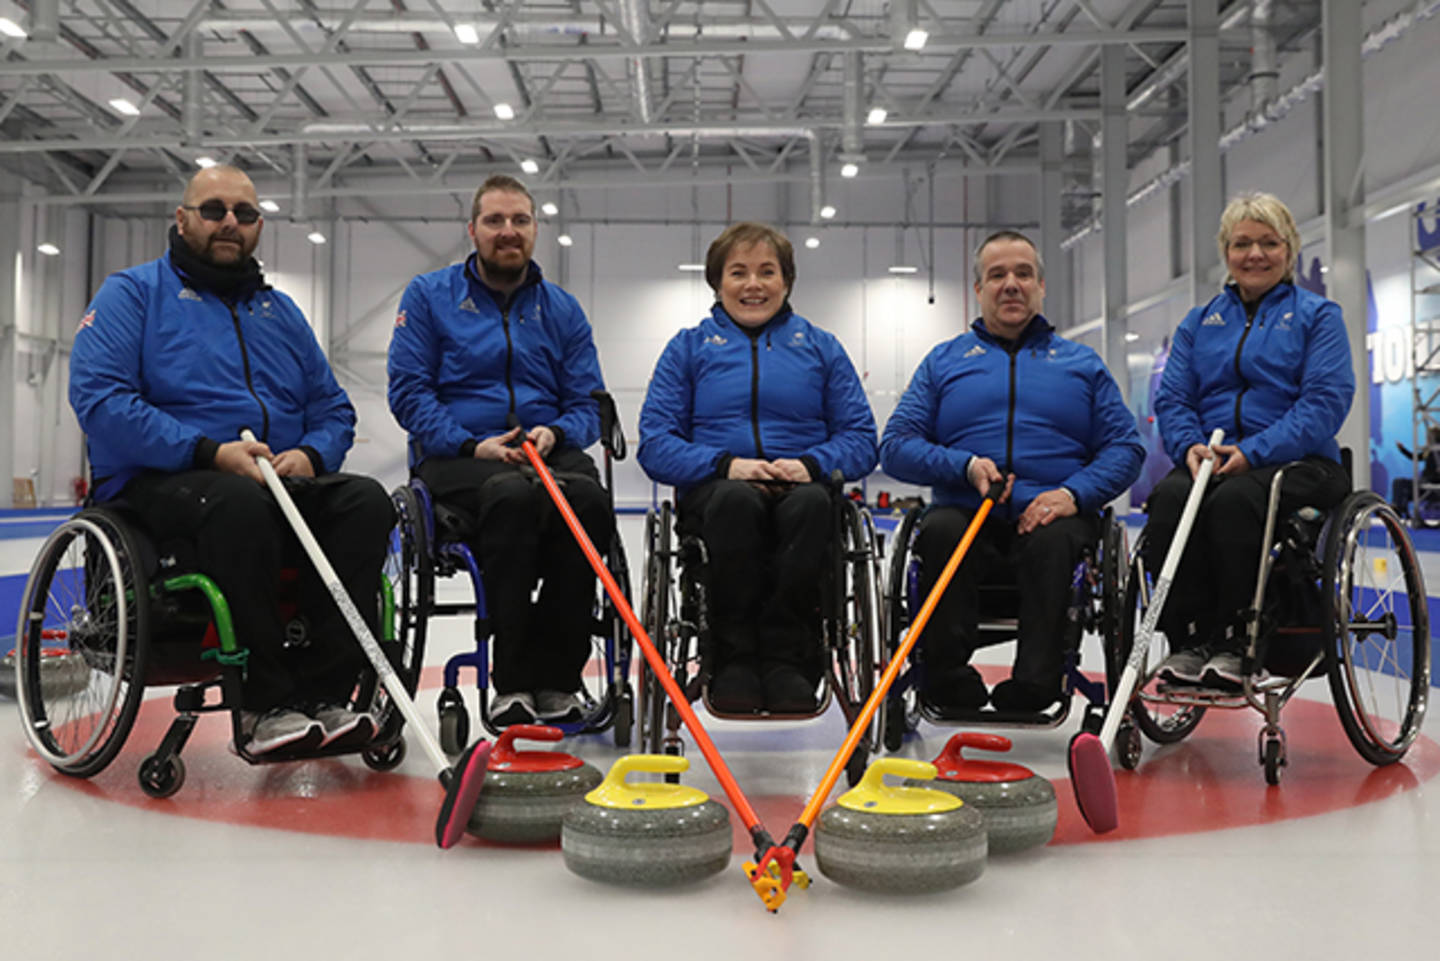 ParalympicsGB wheelchair curling team photo